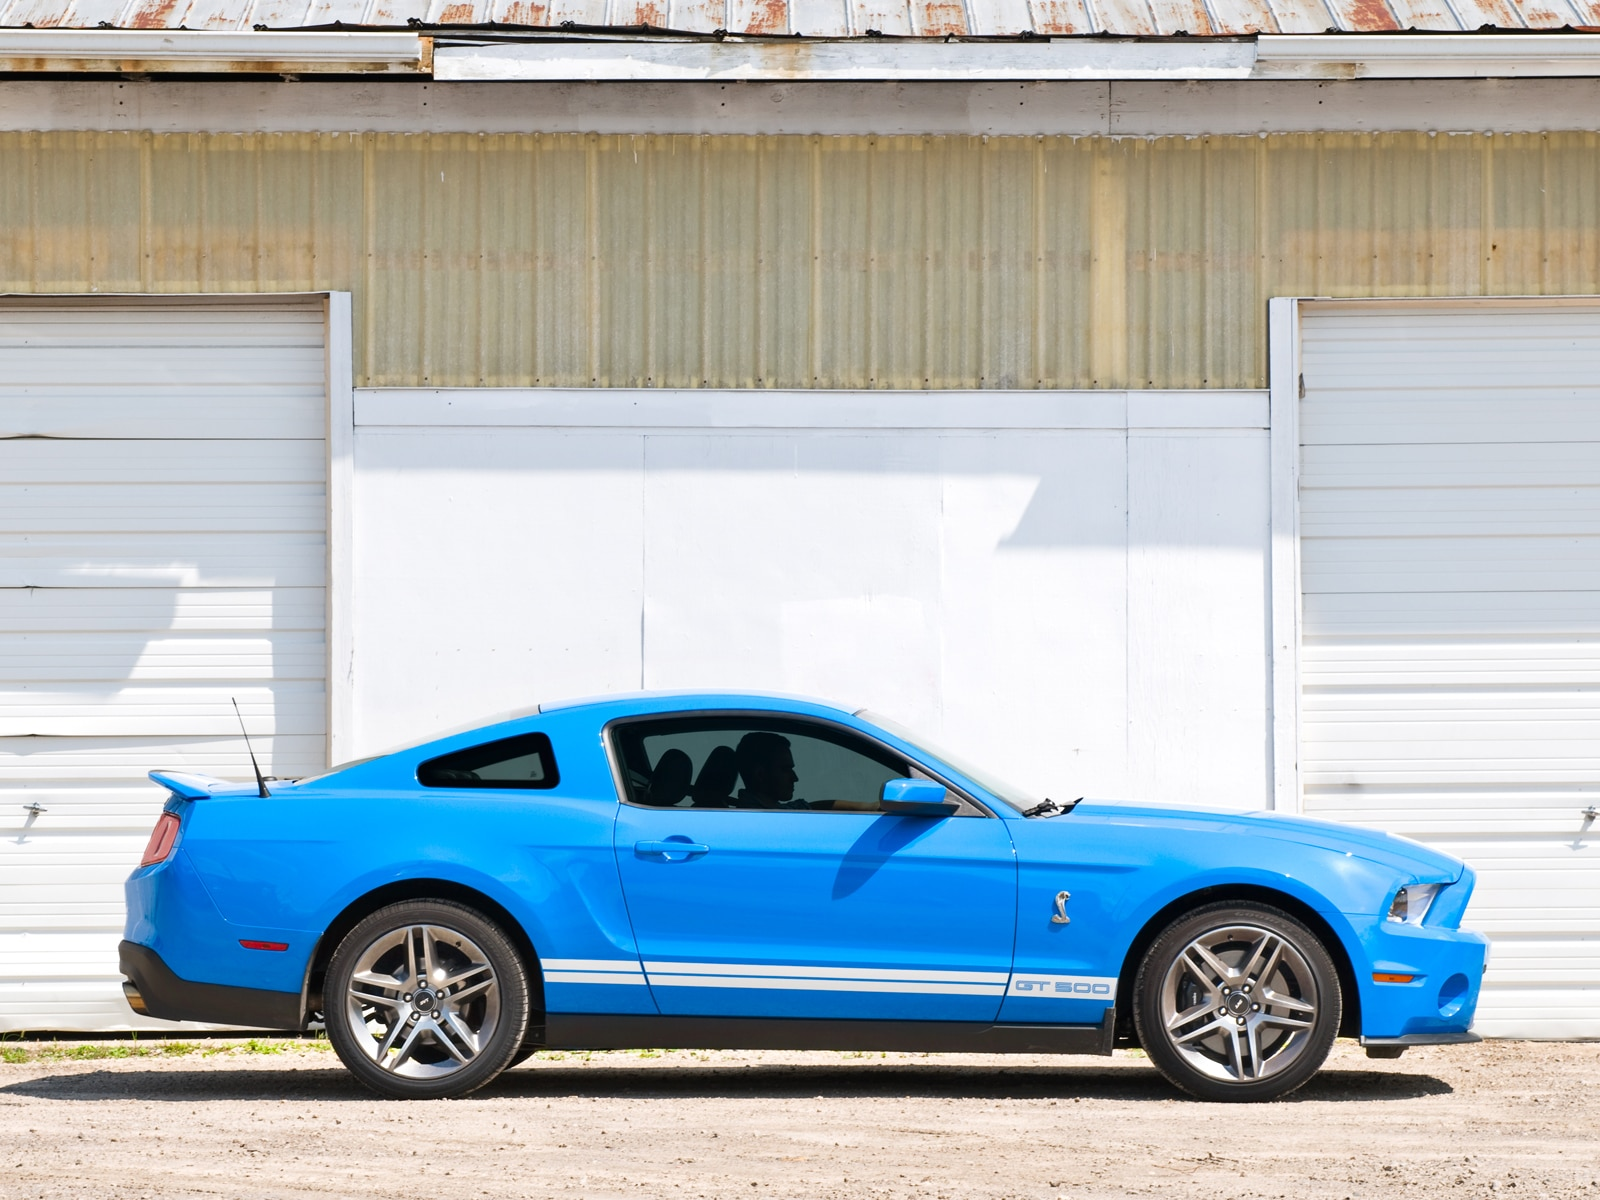 0908 01 Z 2010 Ford Mustang Shelby GT500 Coupe Profile